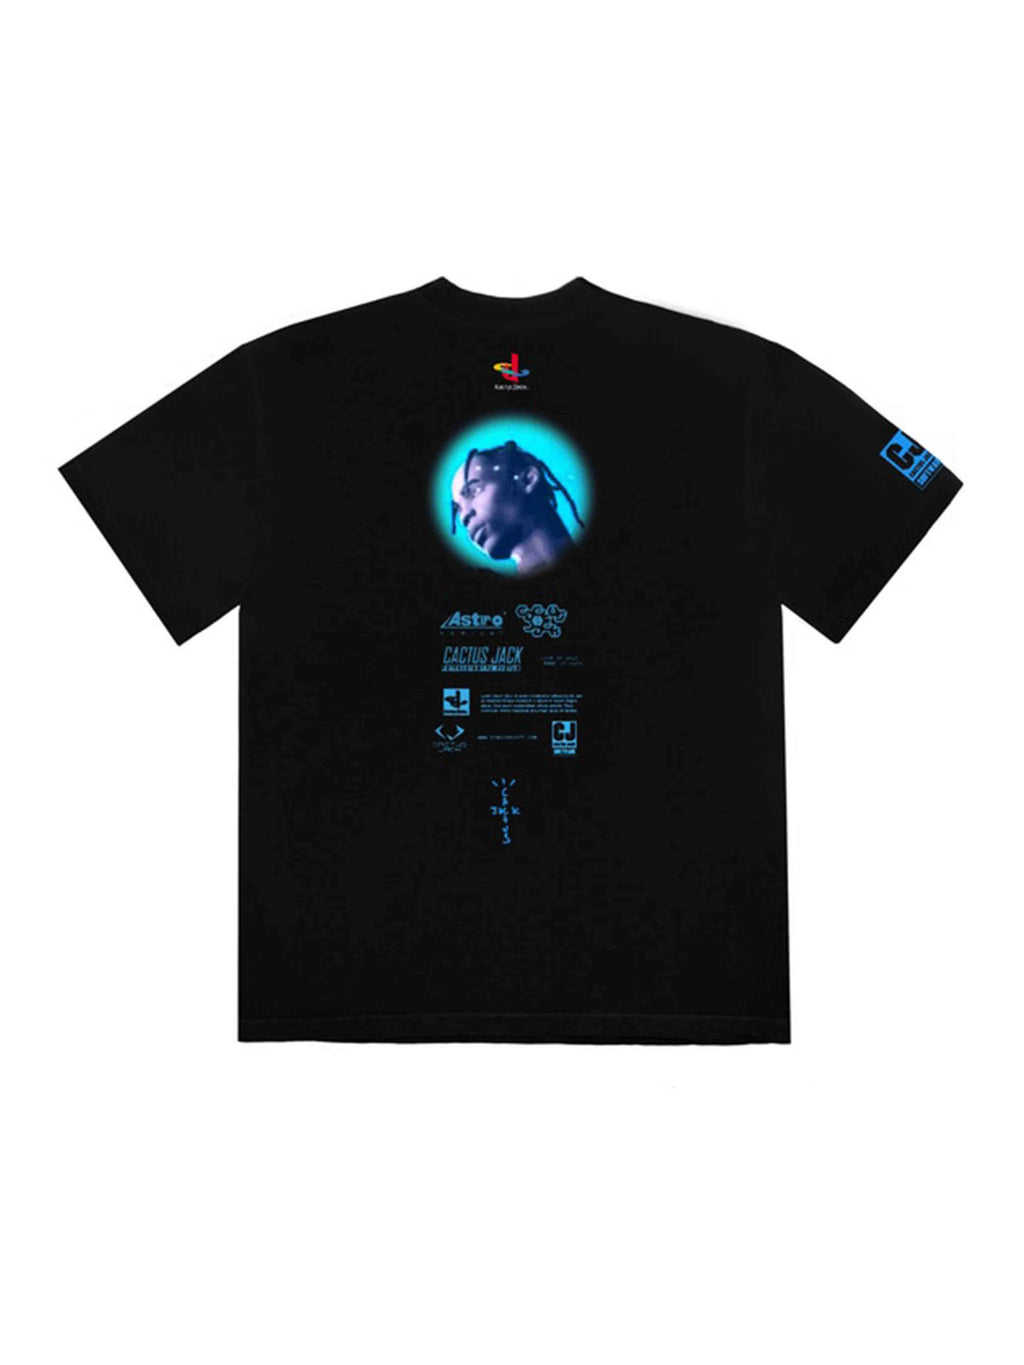 Travis Scott CJ Portal T-Shirt Black - PRIOR